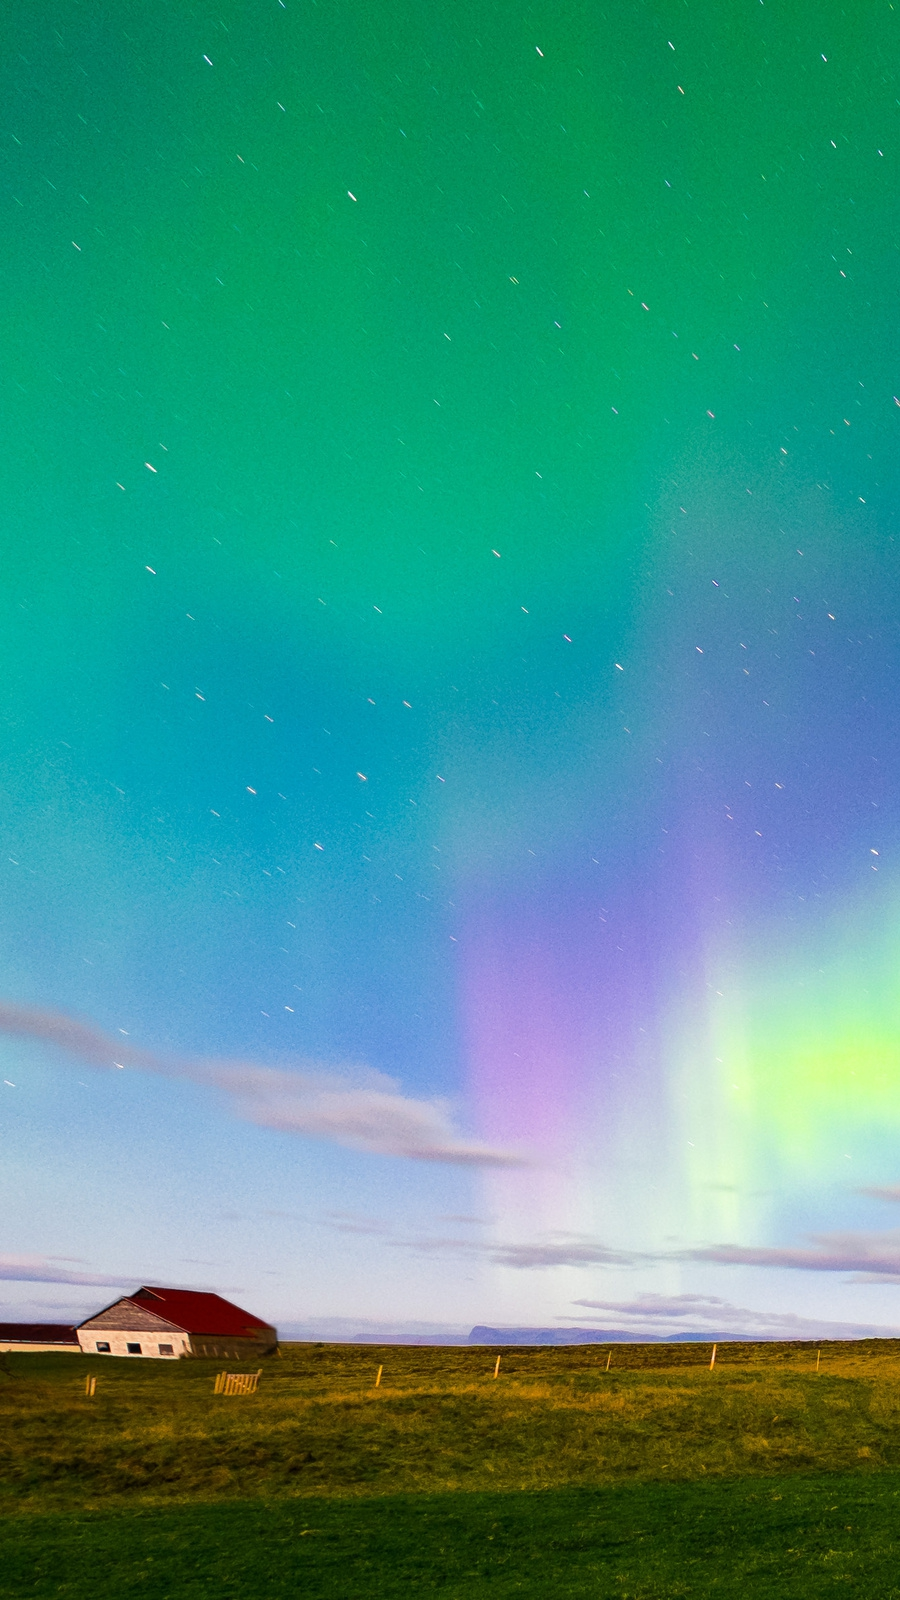 Cute Halloween Phone Wallpaper Iceland Aurora Borealis Northern Lights Iphone Wallpaper